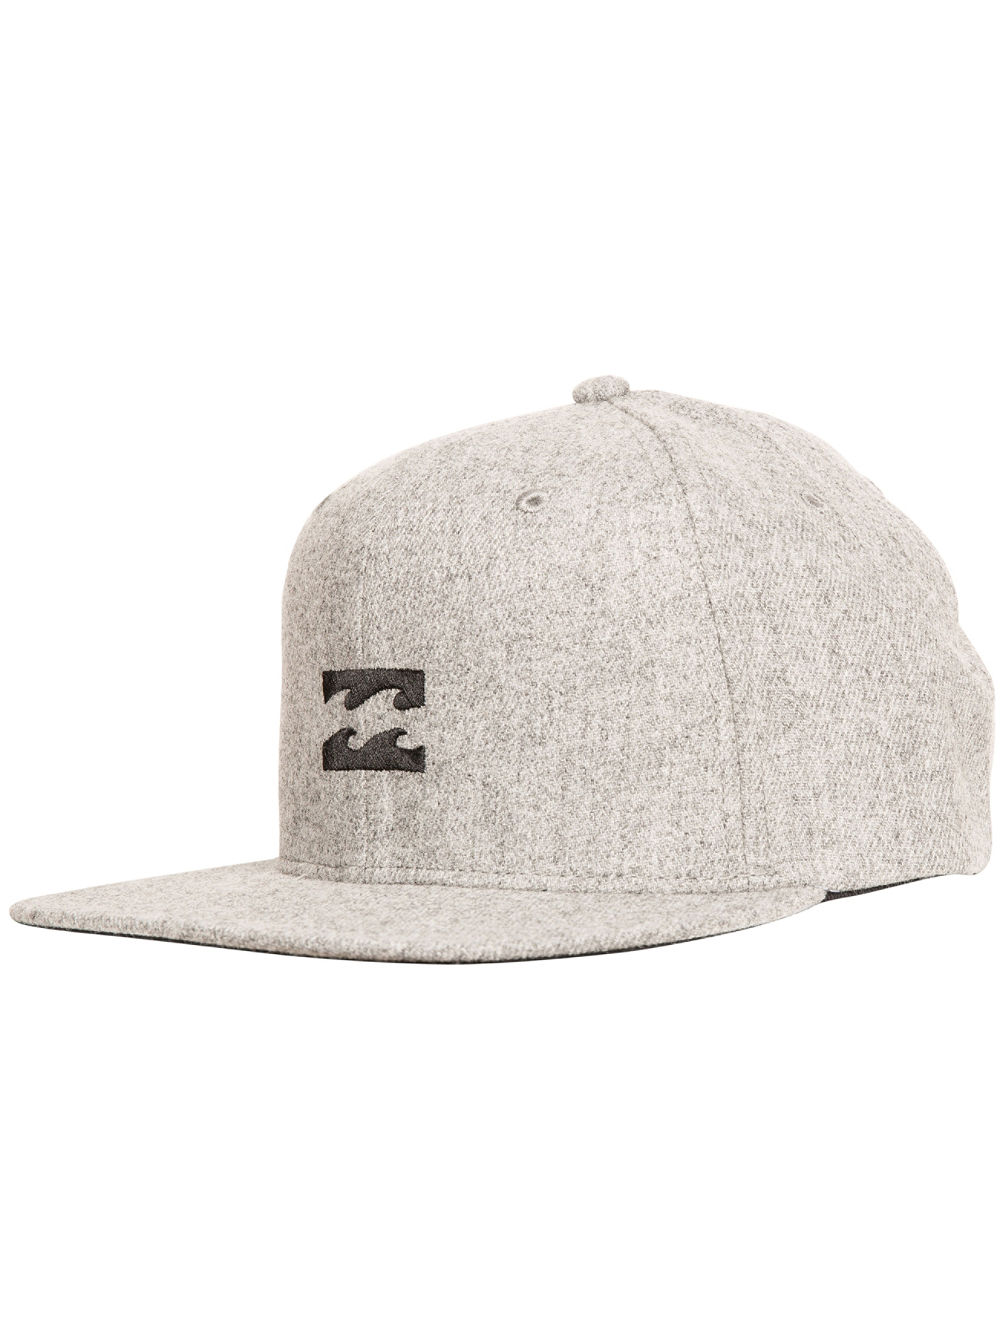 All Day Heather Snap Cap